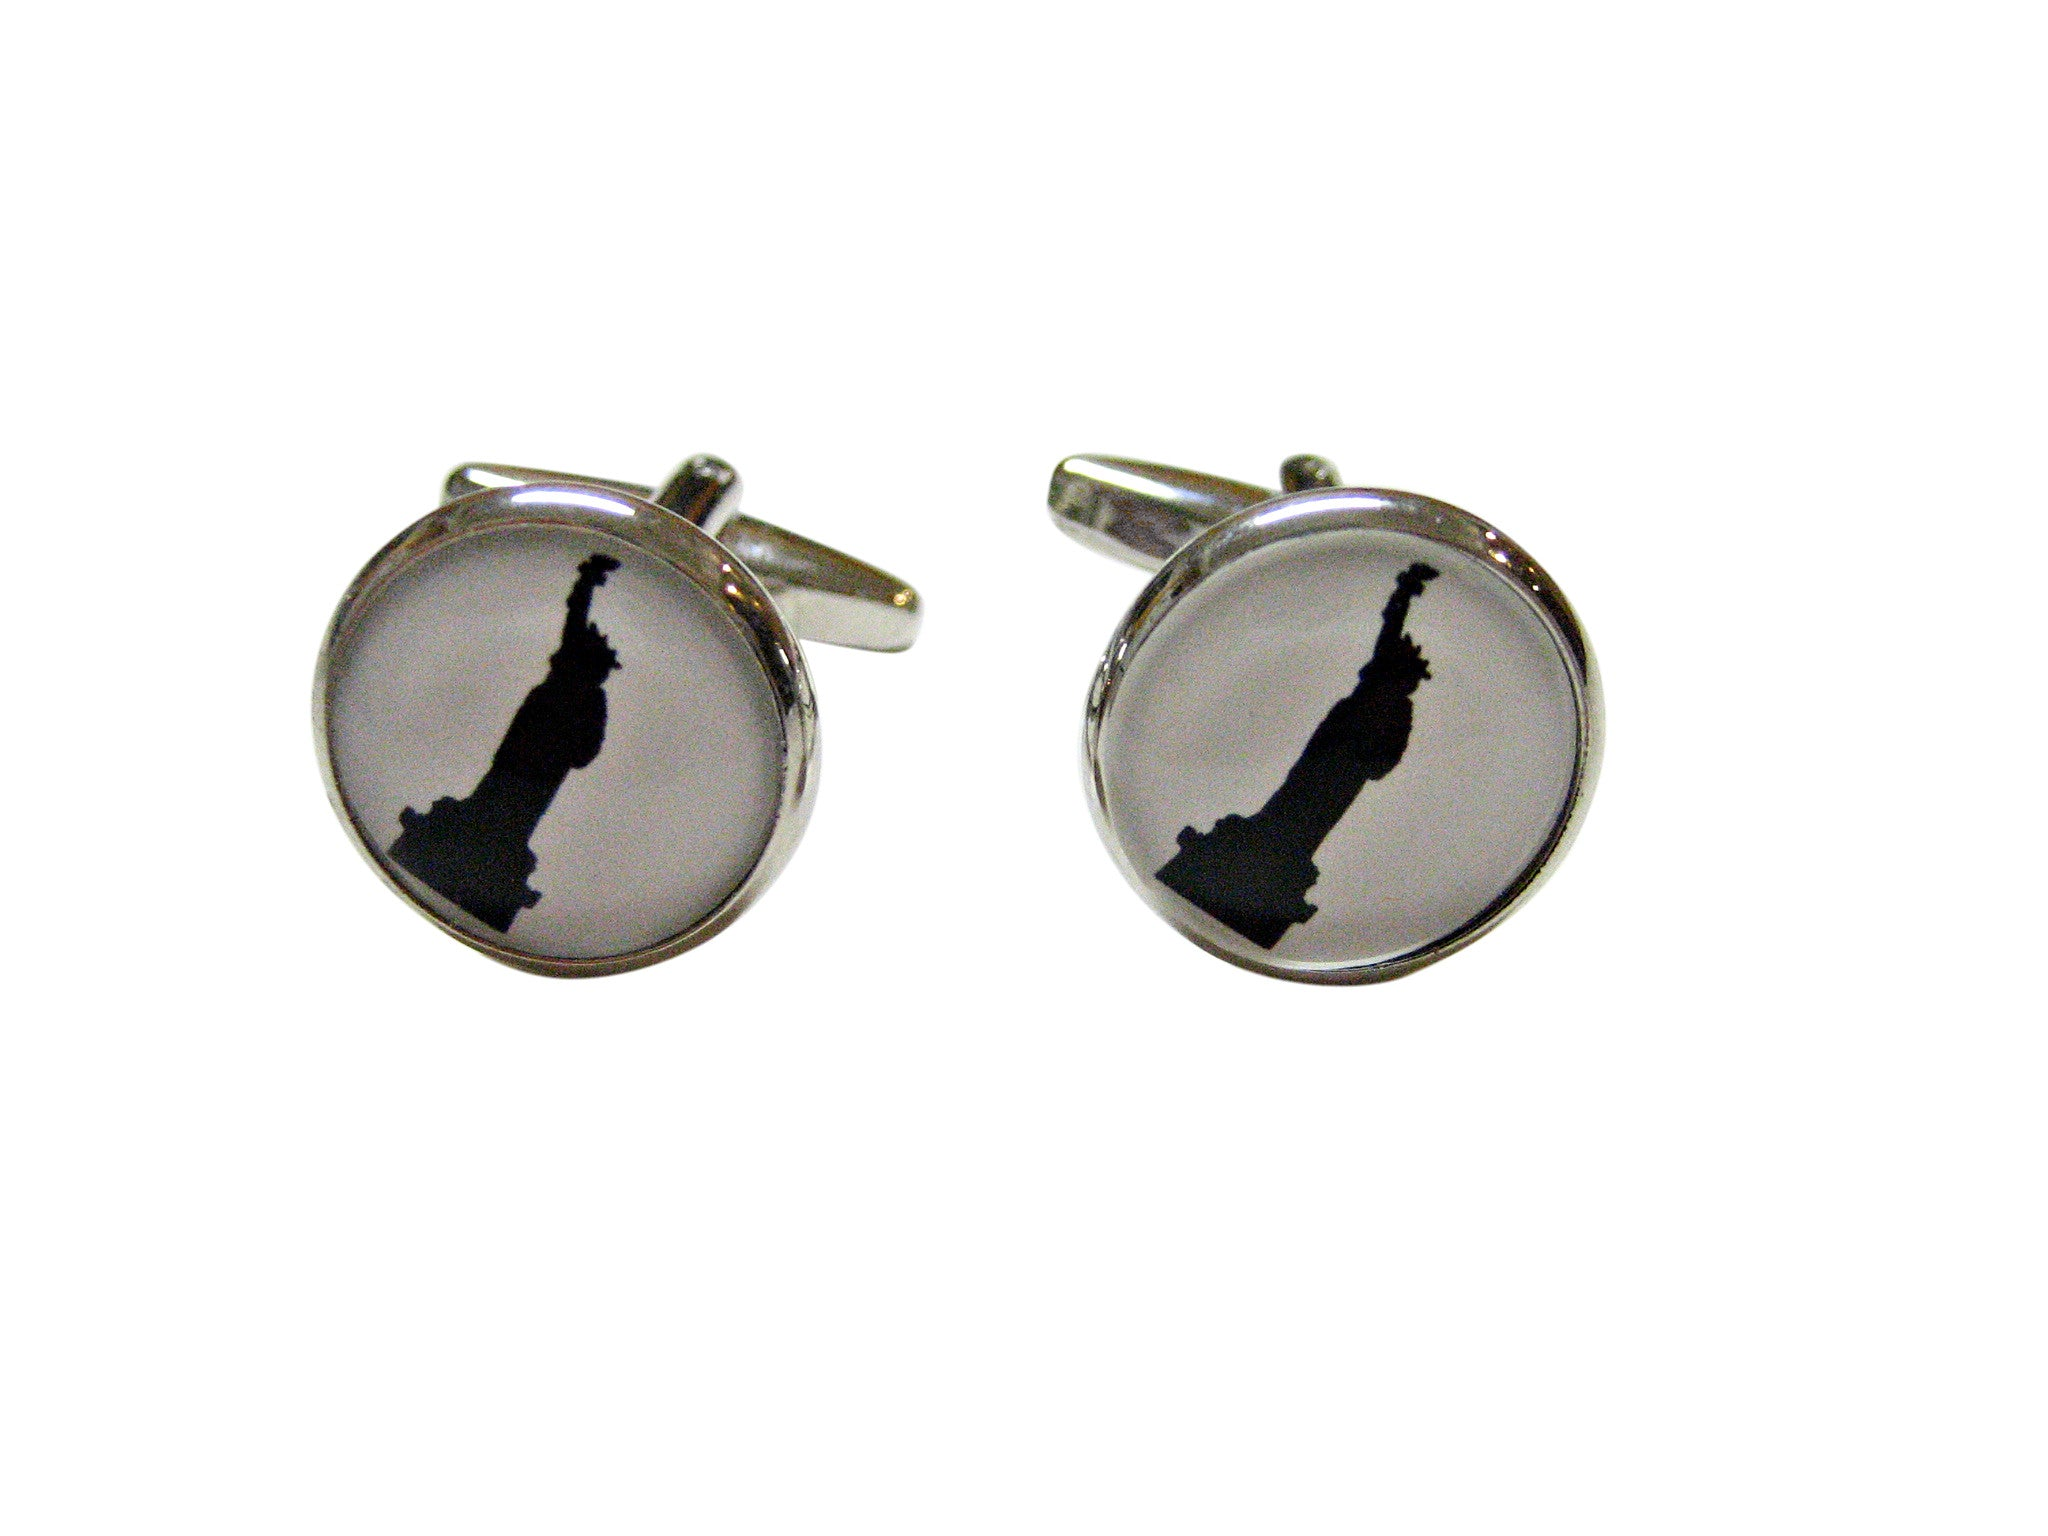 Iconic Statue of Liberty Cufflinks